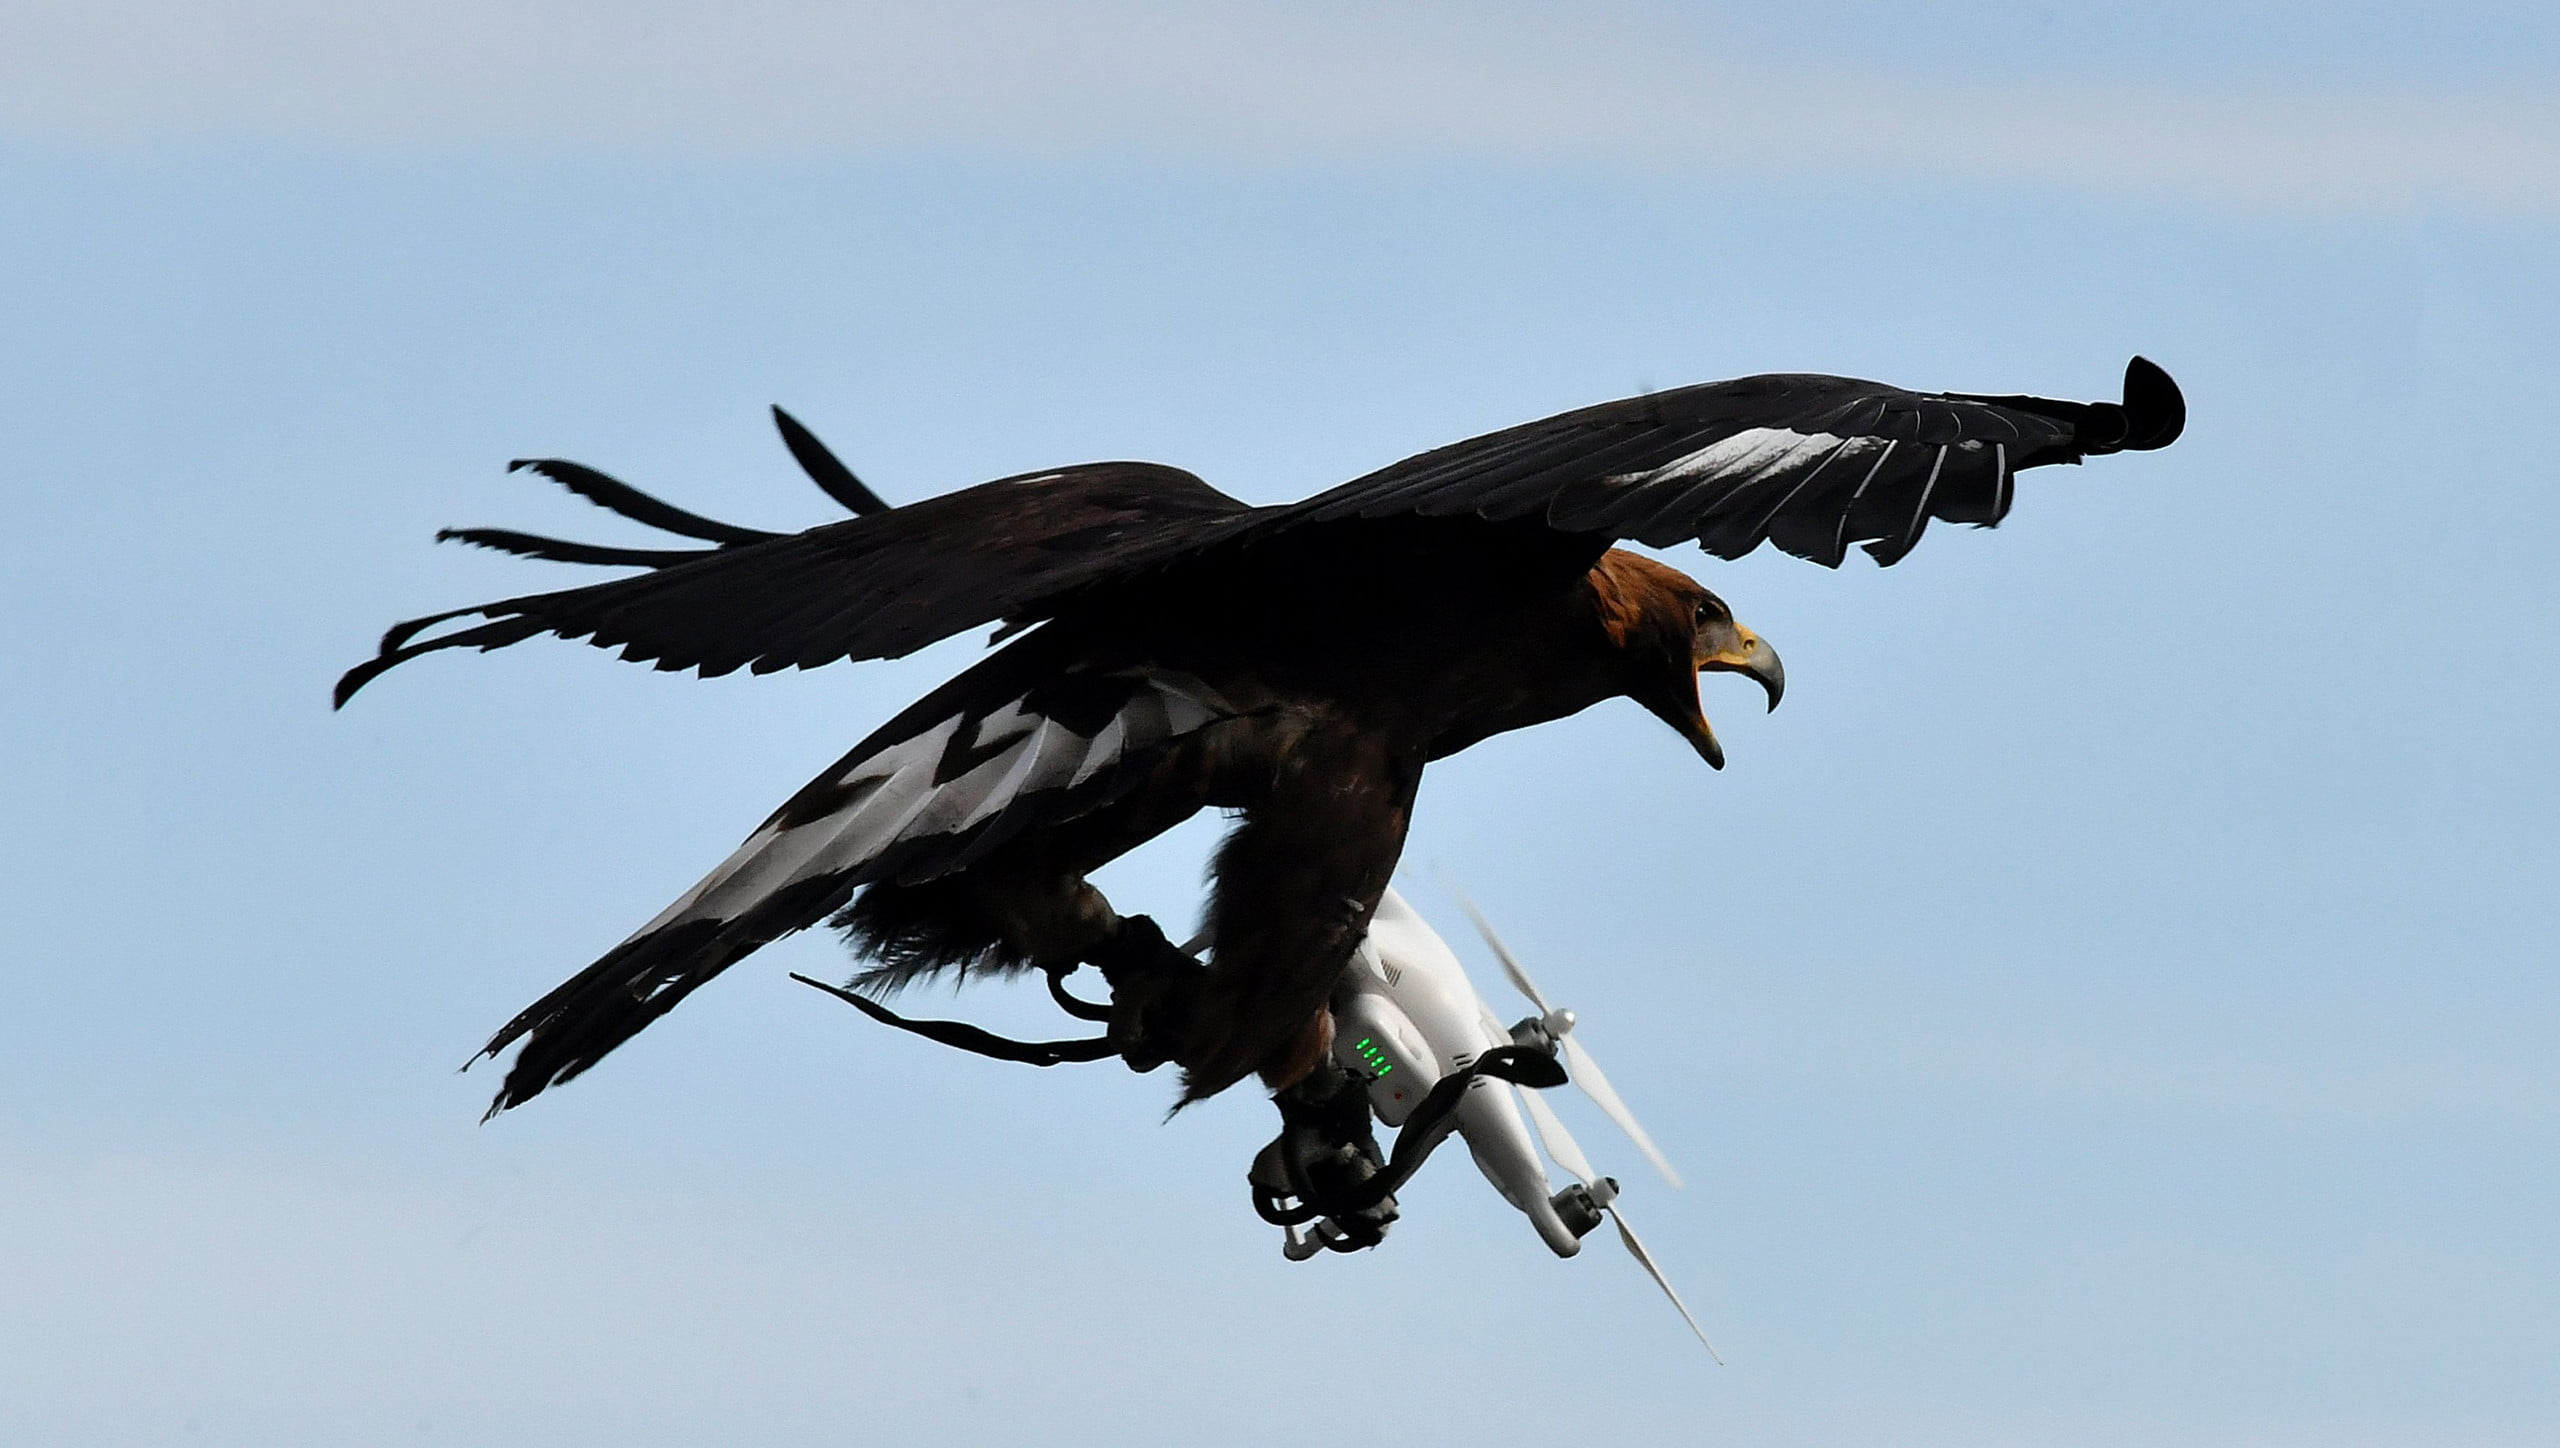 Death from above? How we're preparing for a future filled with weaponized drones